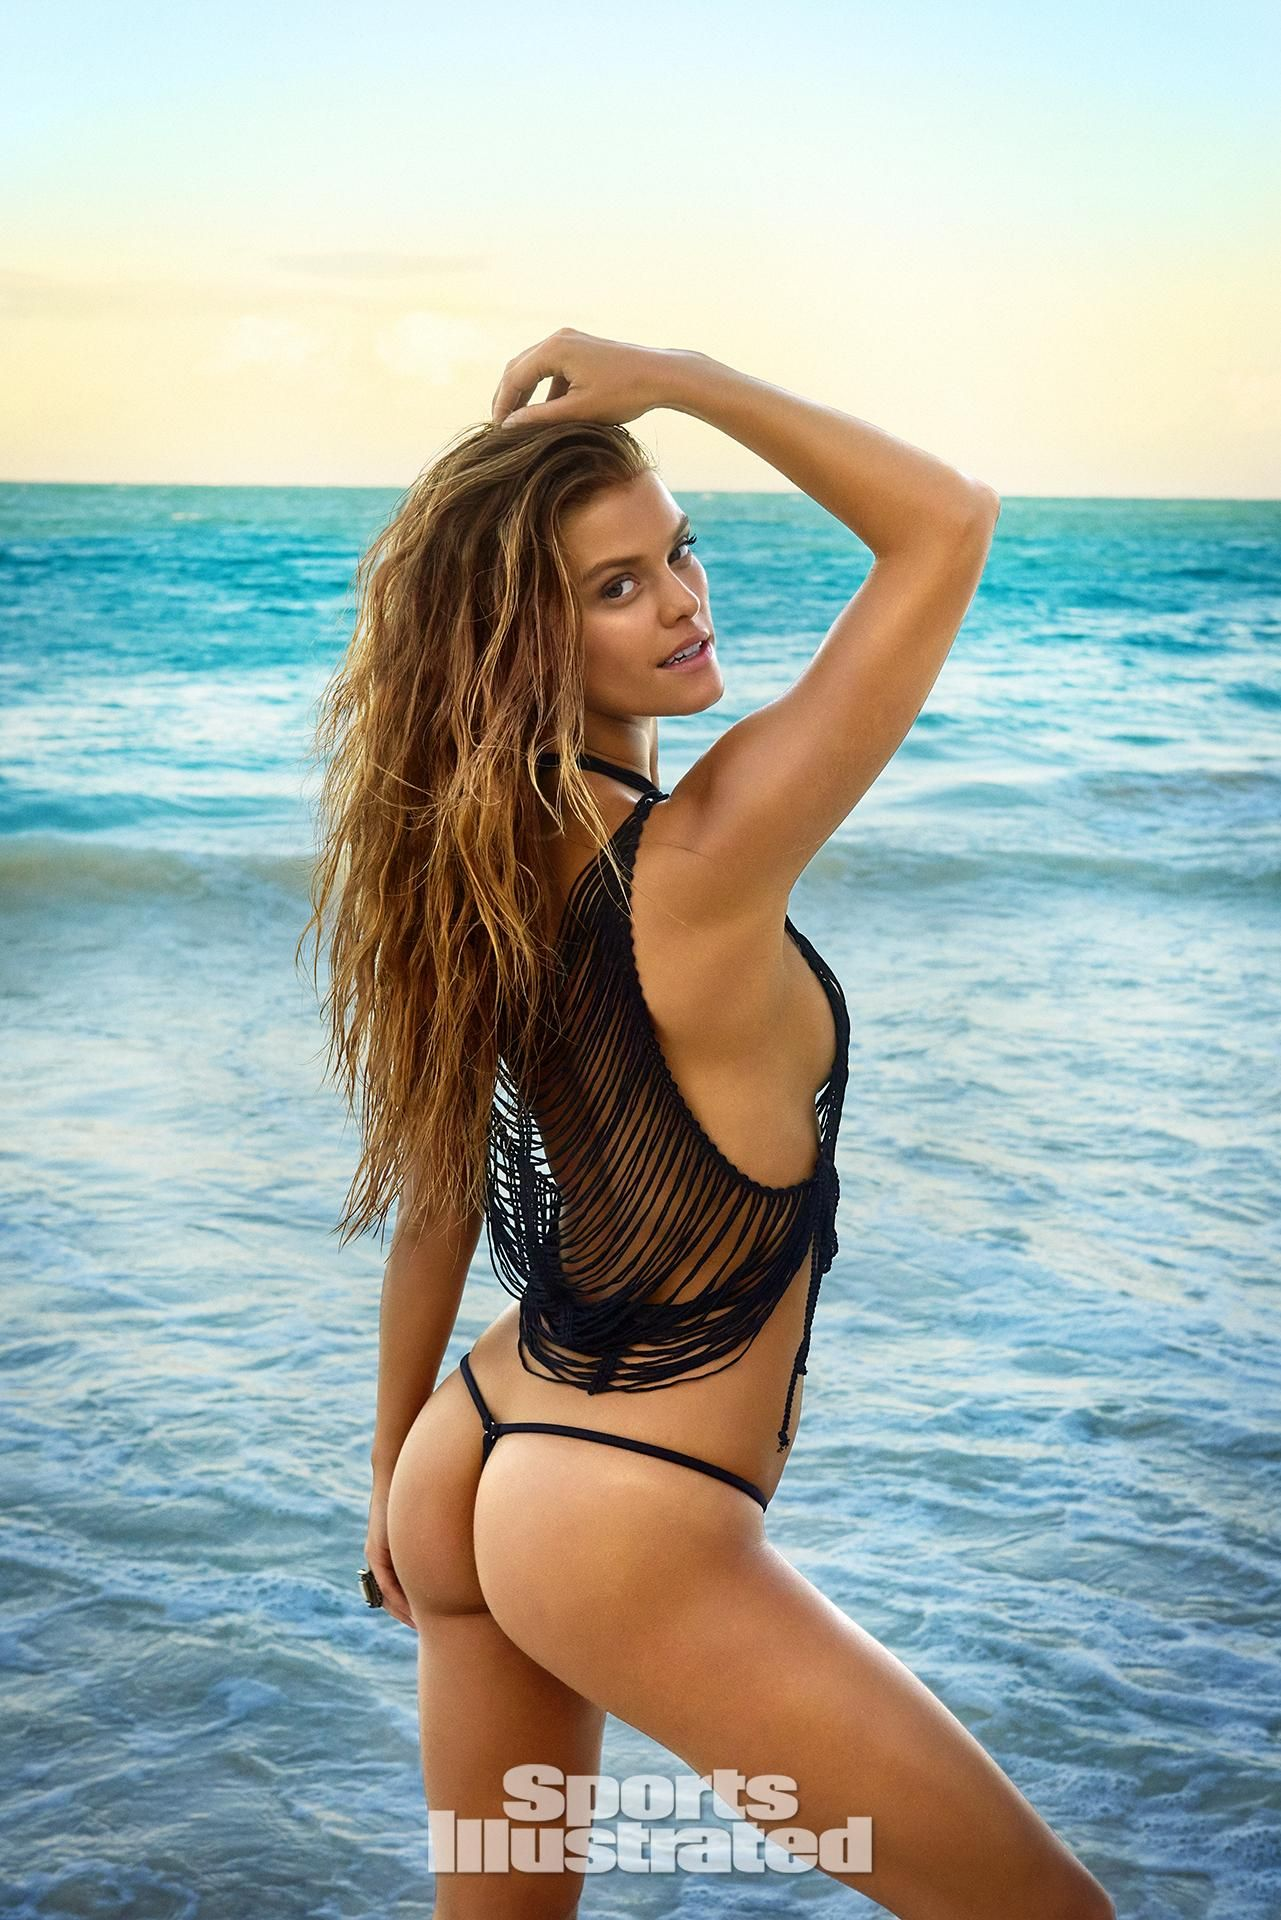 fe7d3bb04495c Nina Agdal was photographed by Ruven Afanador in Zanzibar. Top by La Perla.  Swimsuit by TeenyB Bikini Couture.